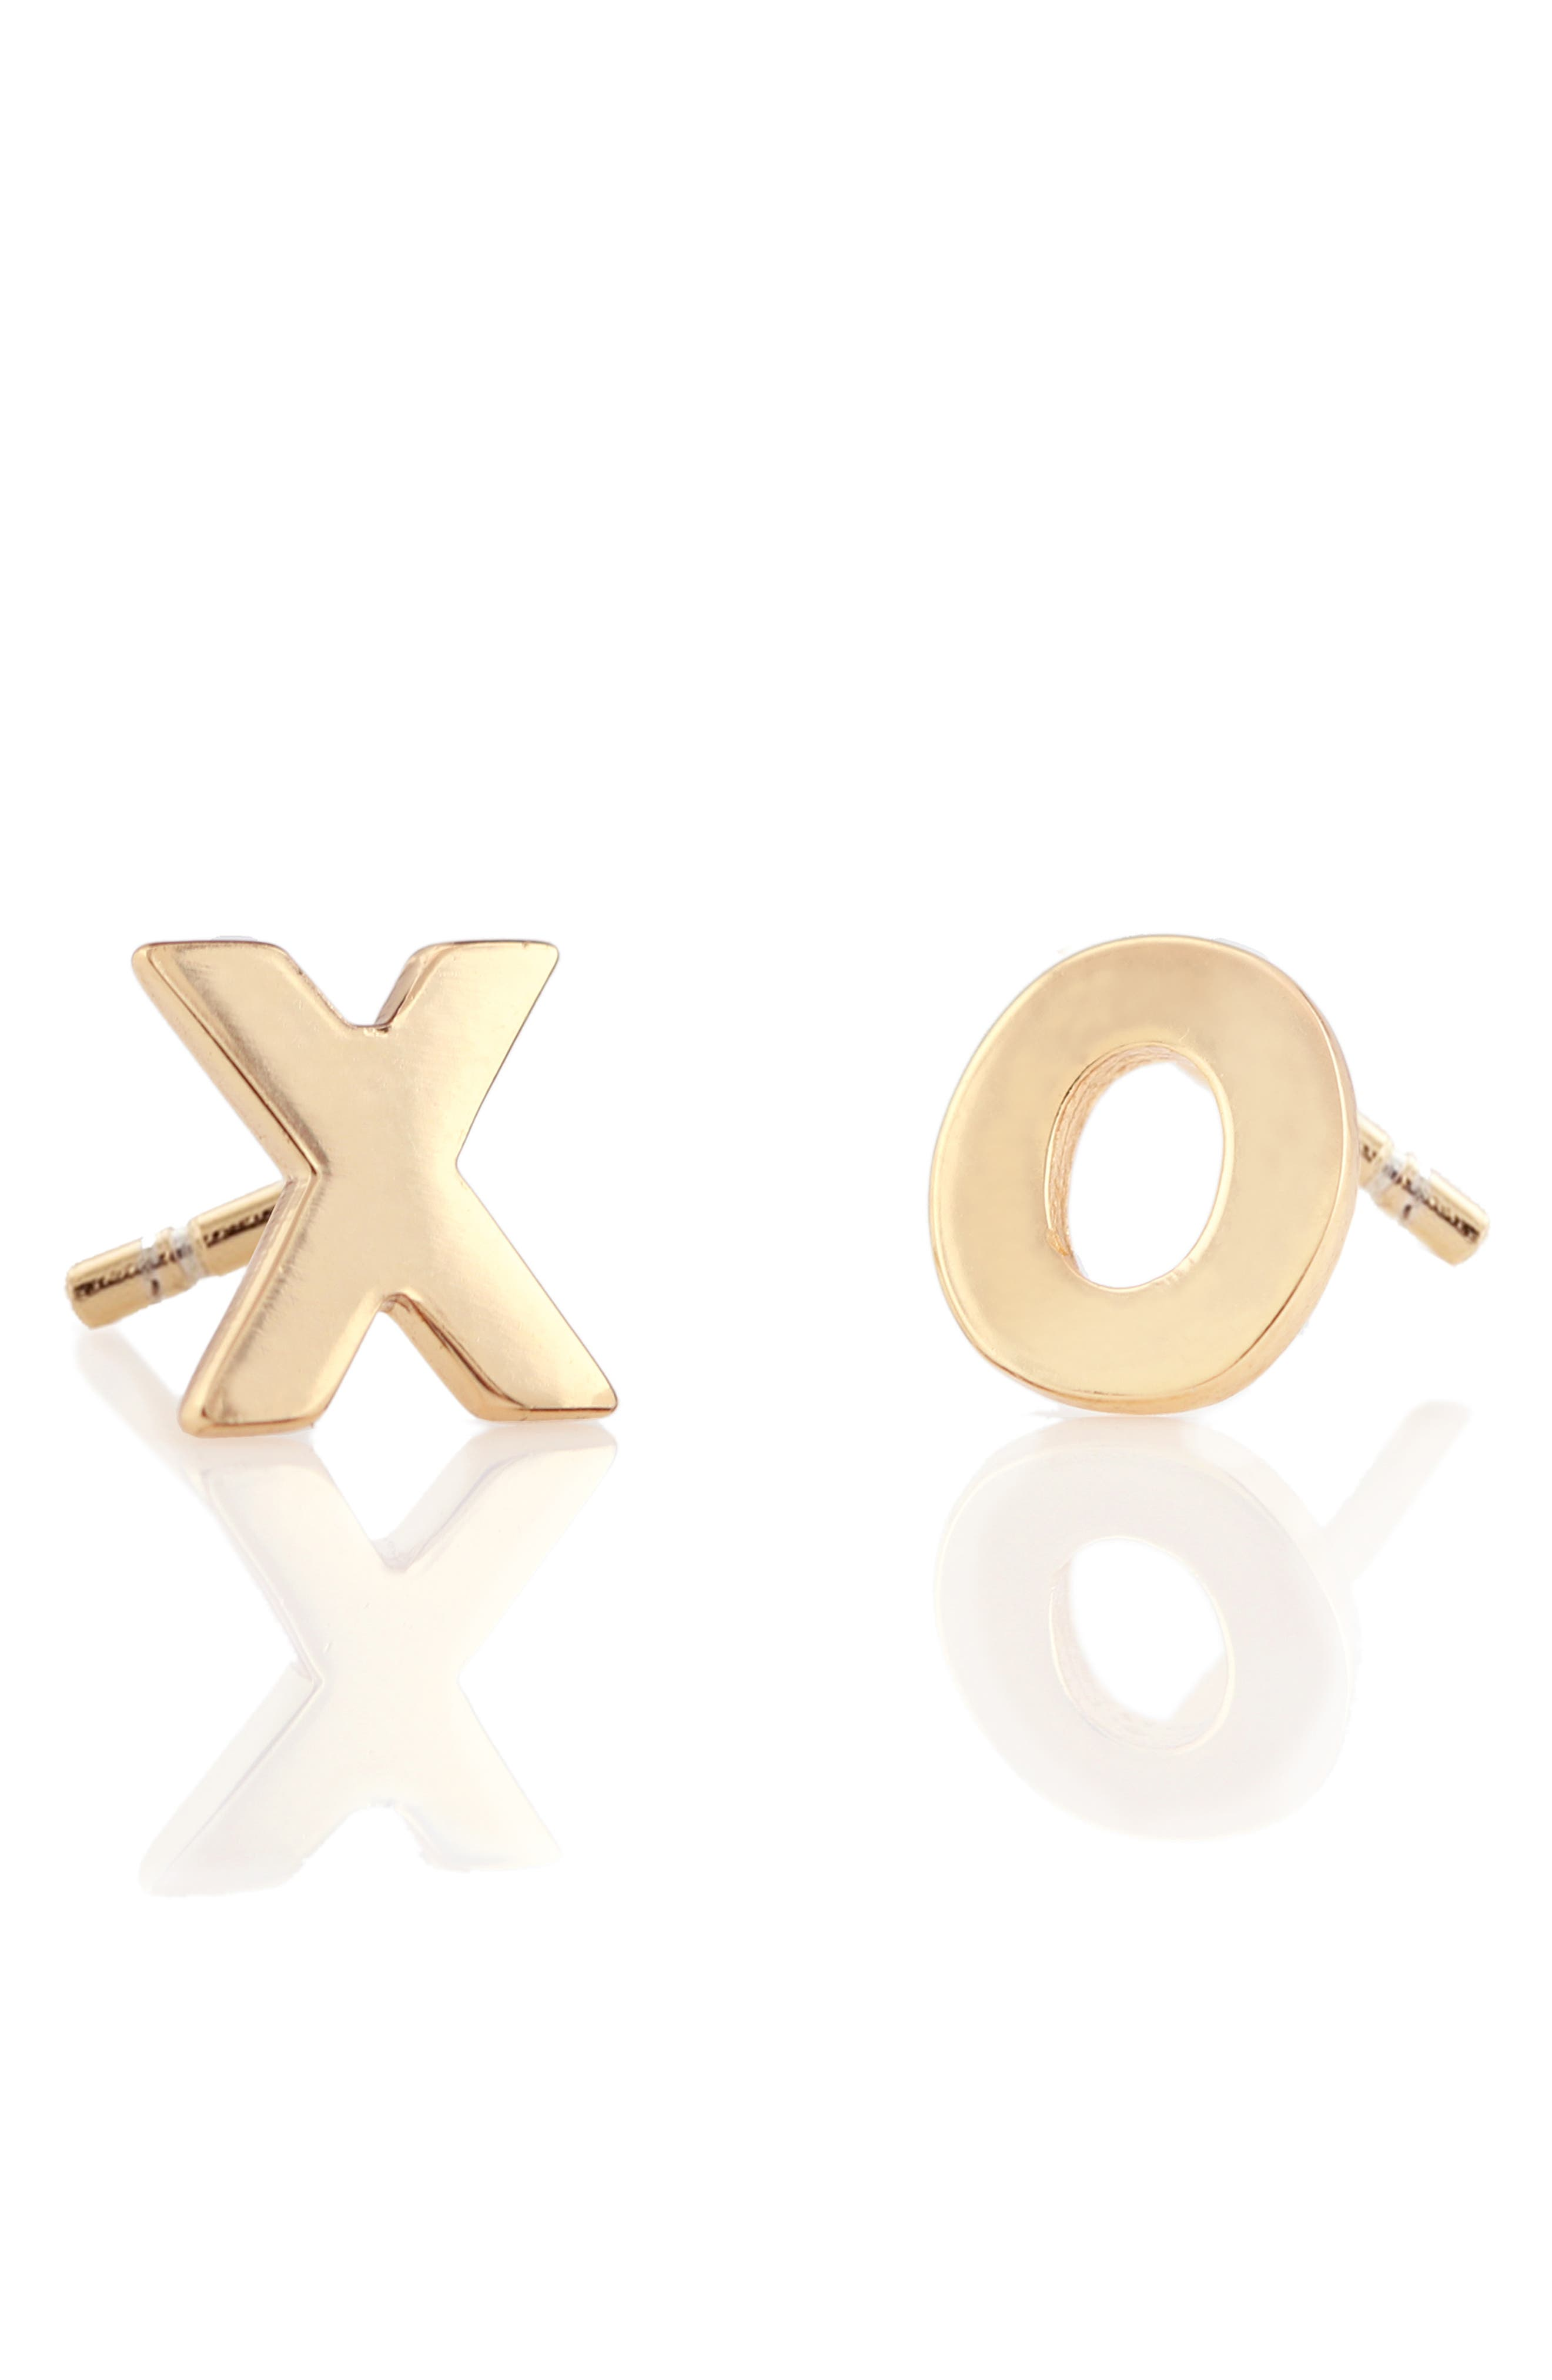 XO Stud Earrings,                             Main thumbnail 2, color,